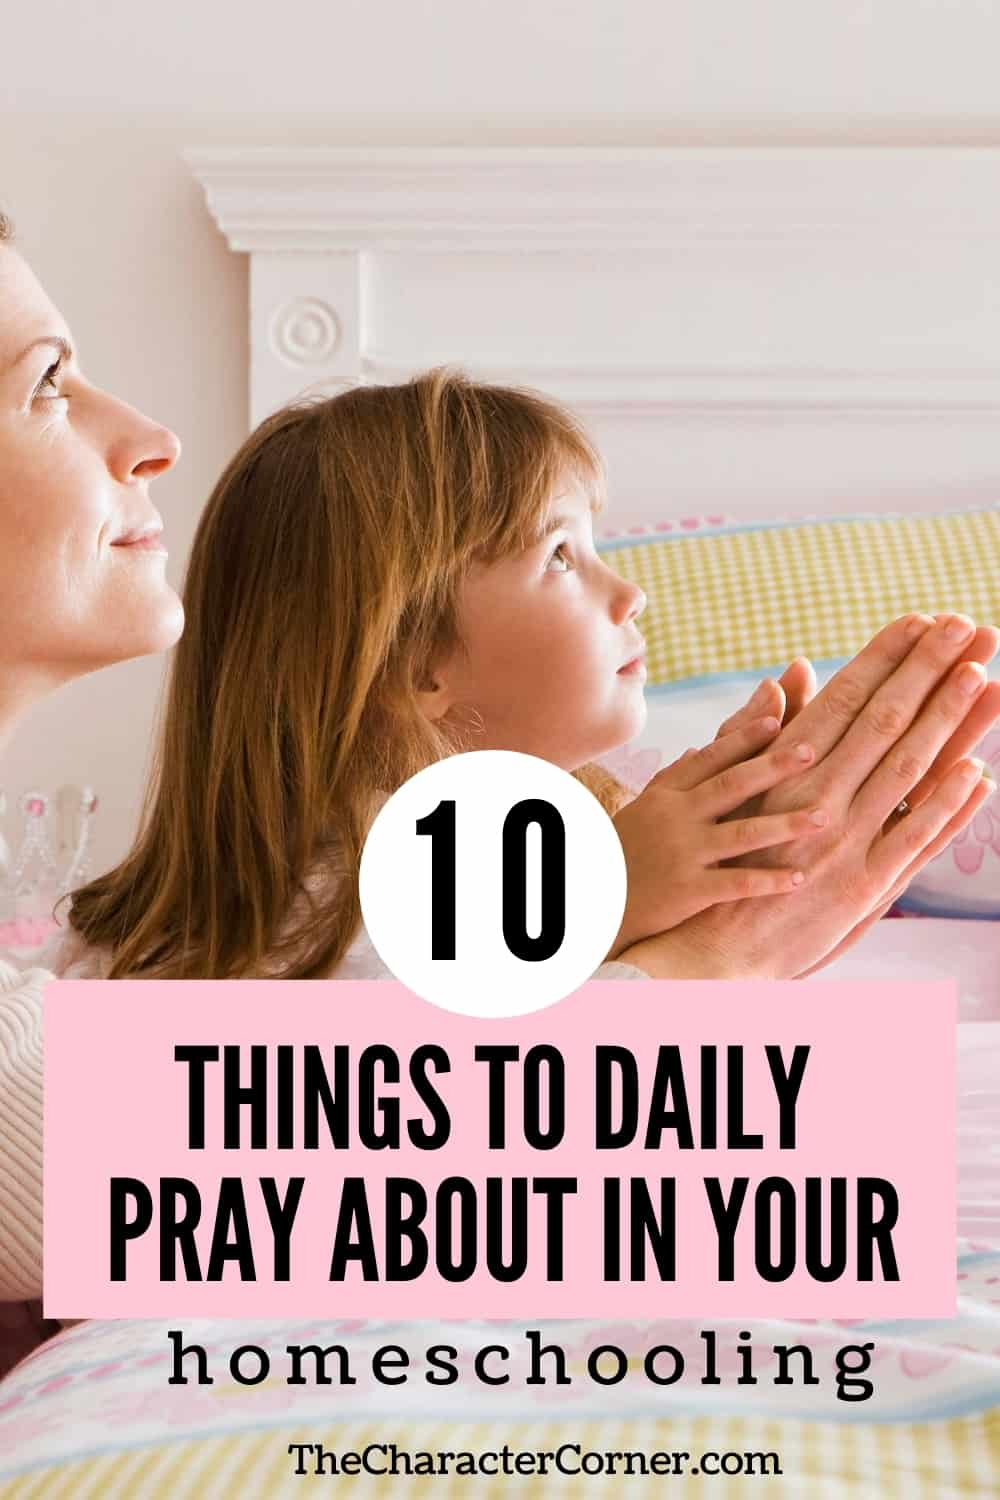 Mom and daughter starting the homeschool morning with prayer text on image reads:10 Things To Pray About Daily In Your Homeschooling